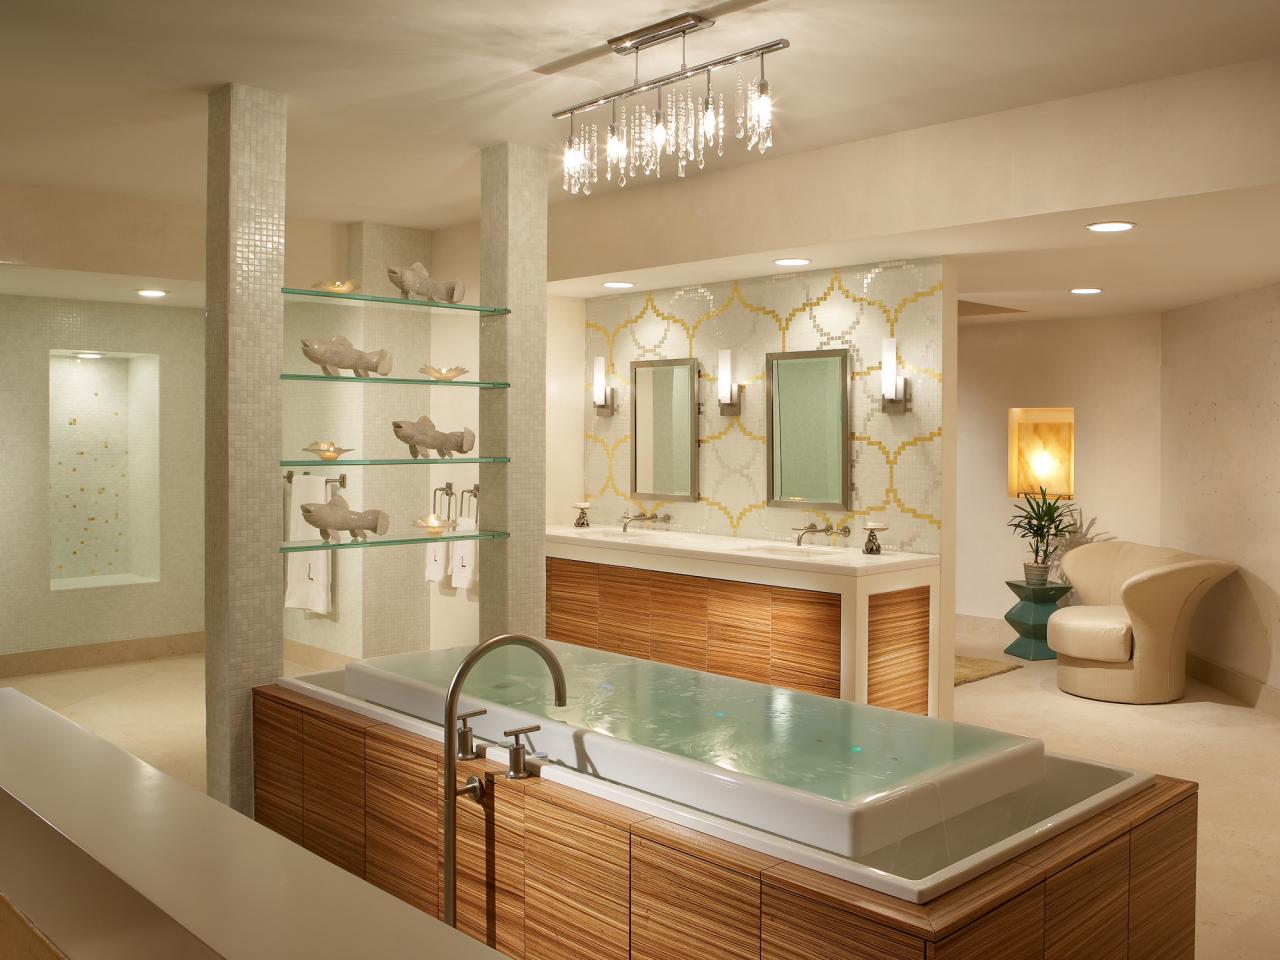 Best of designers 39 portfolio bathrooms bathroom ideas for Best bathroom ideas